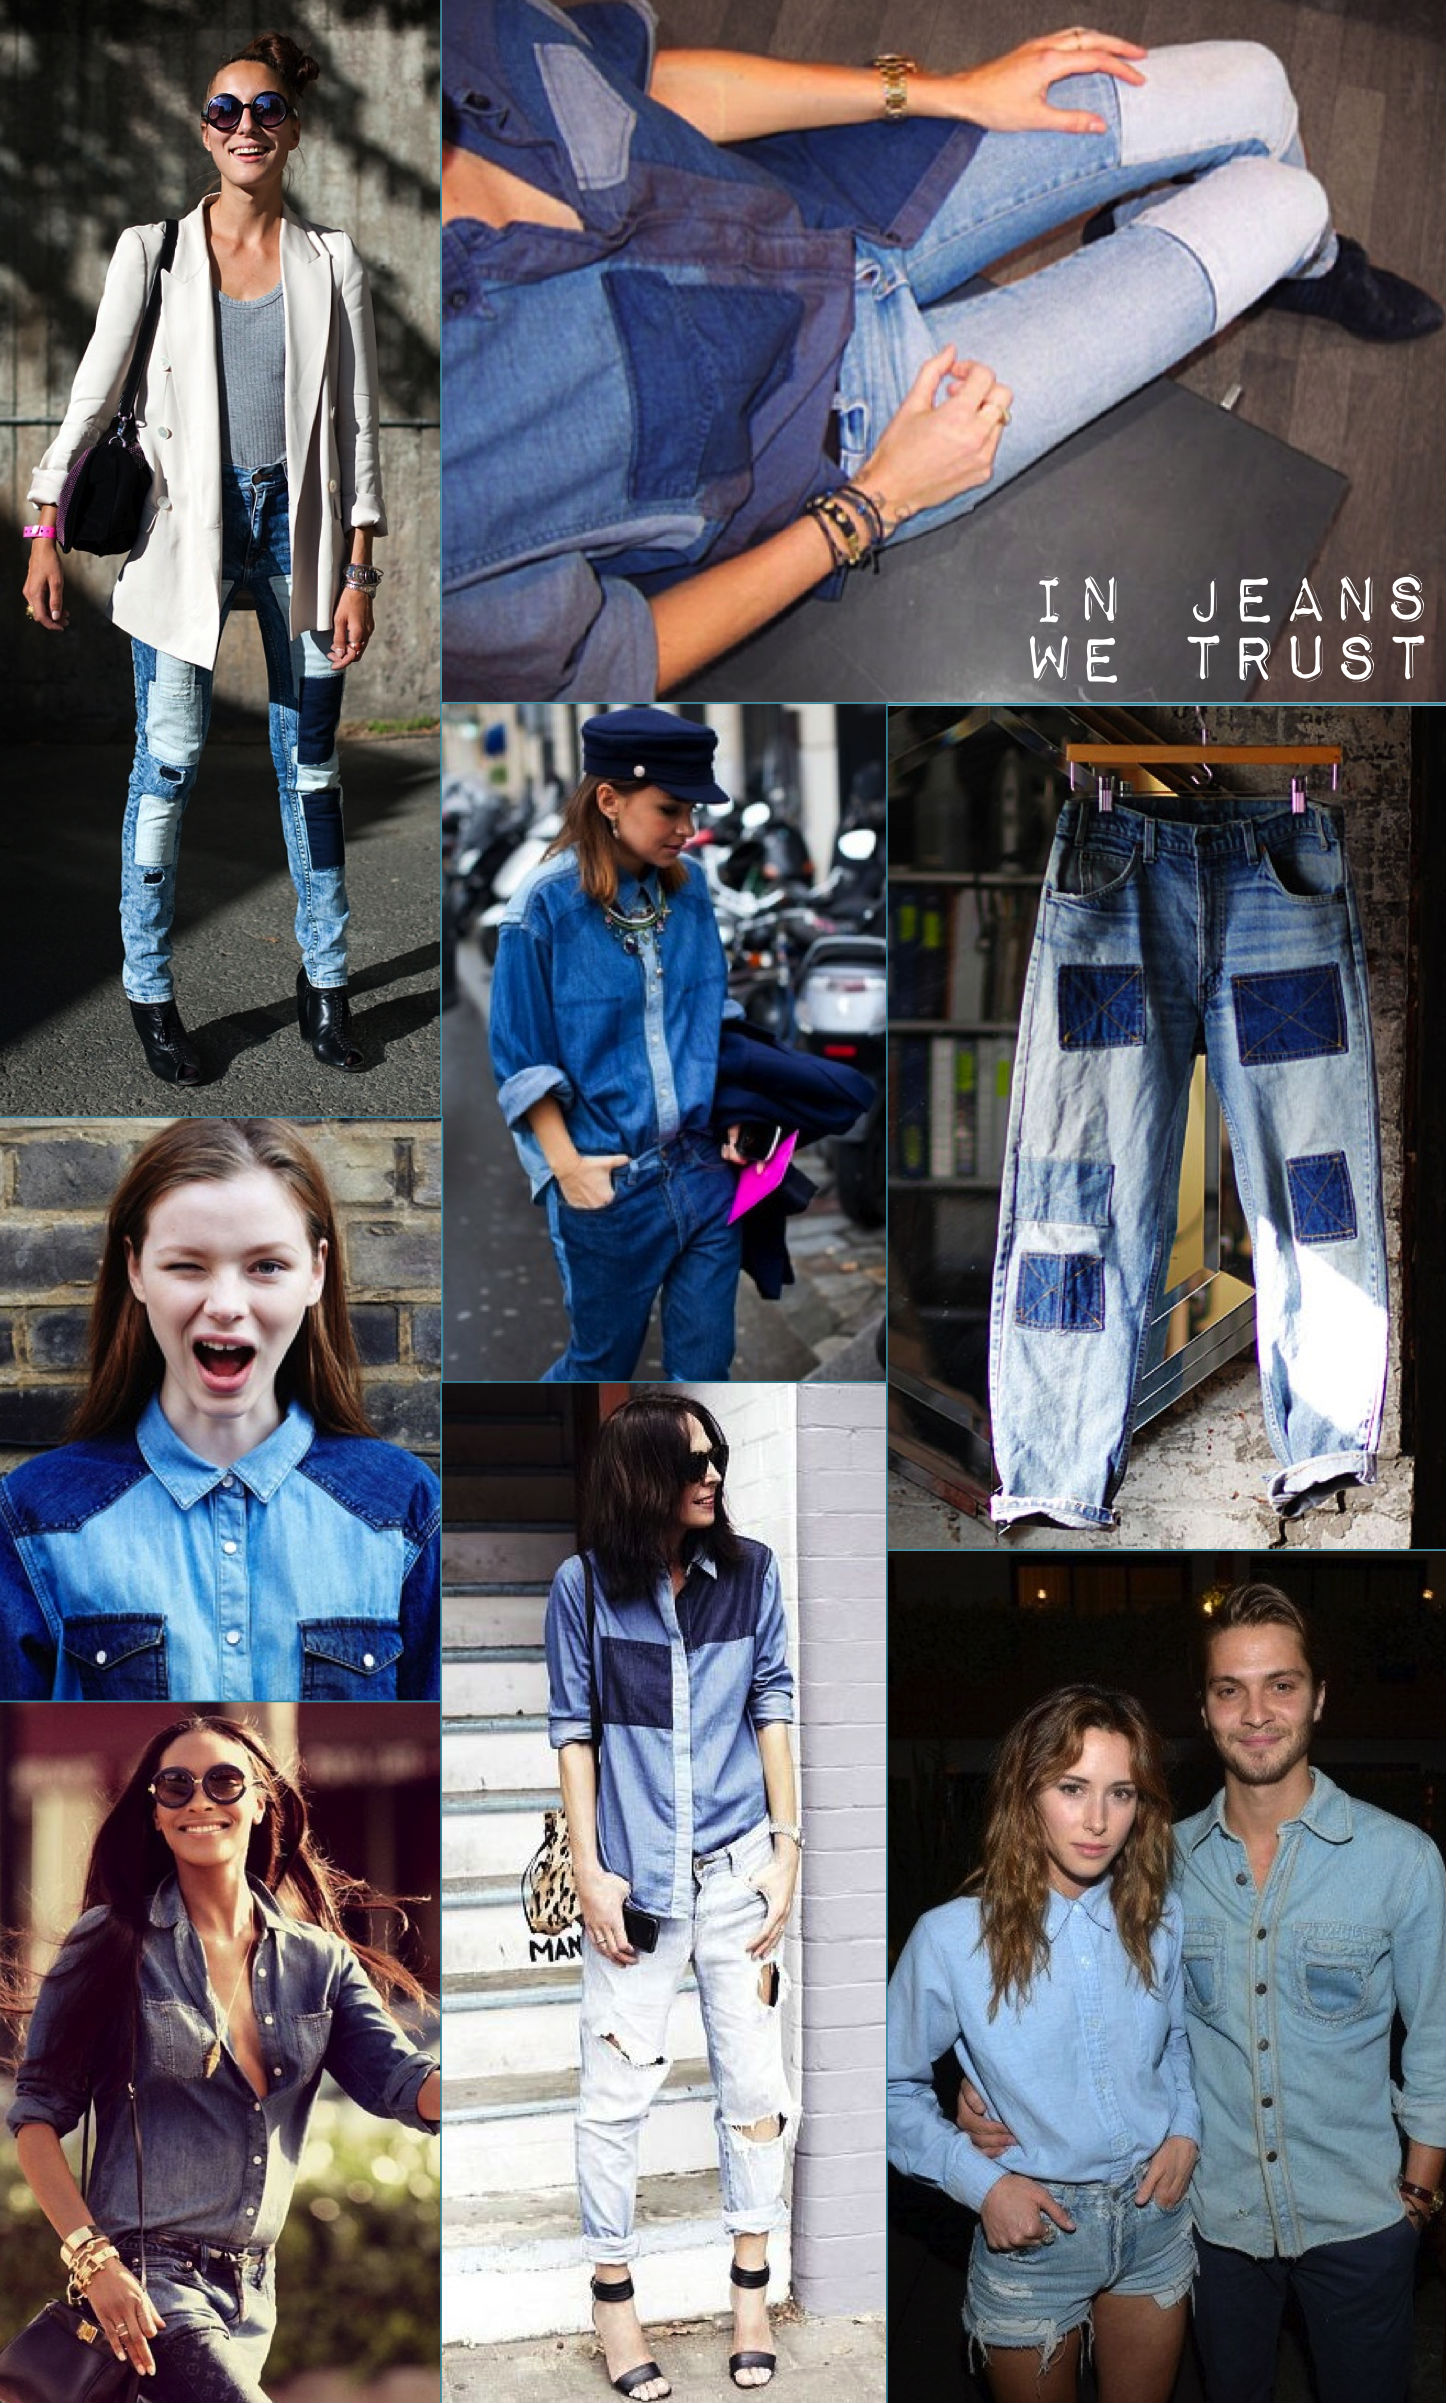 Jeans mania!